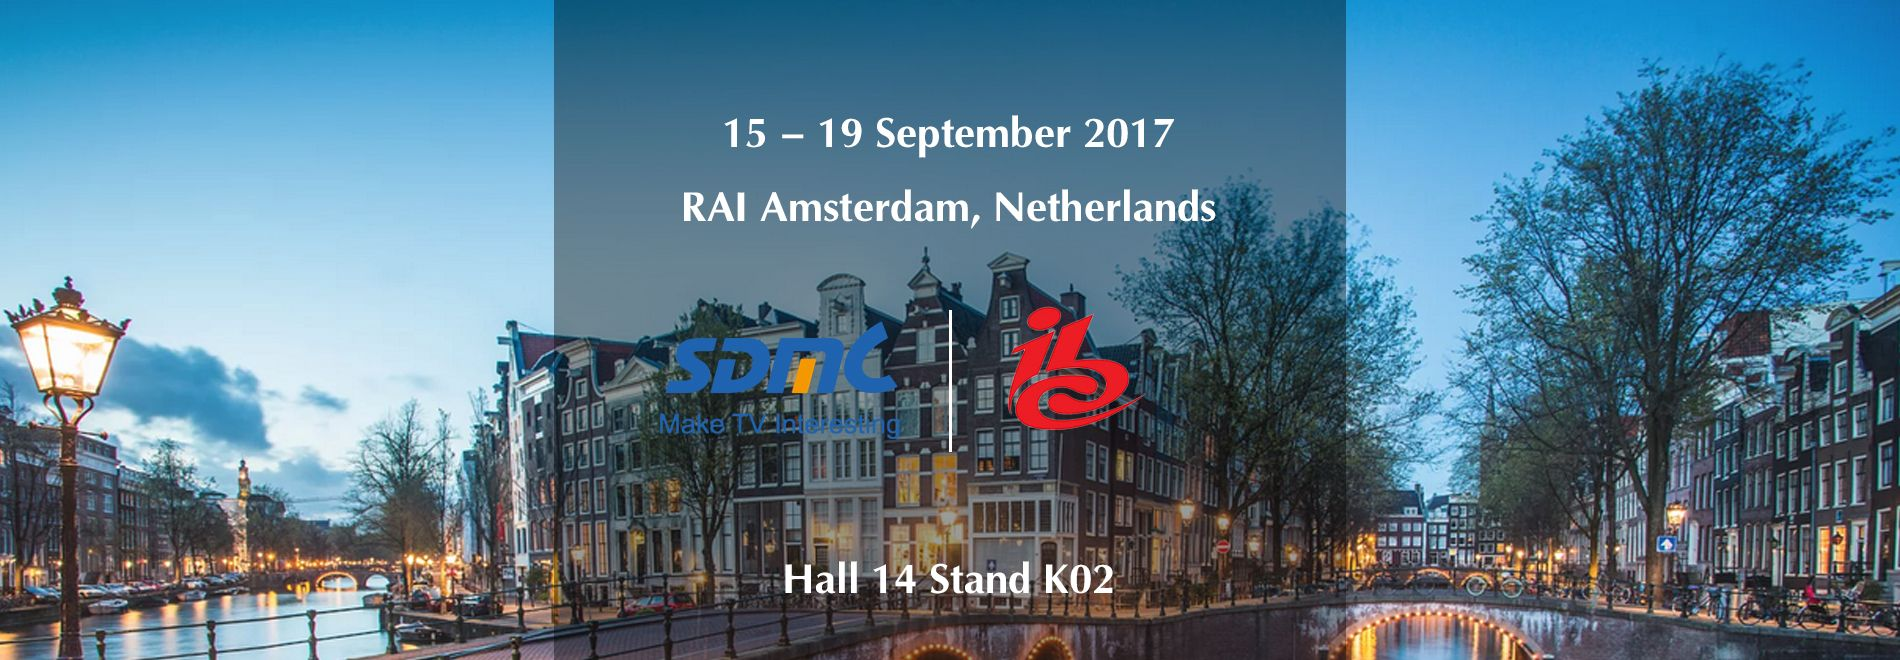 Meet SDMC At IBC2017 in amsterdam